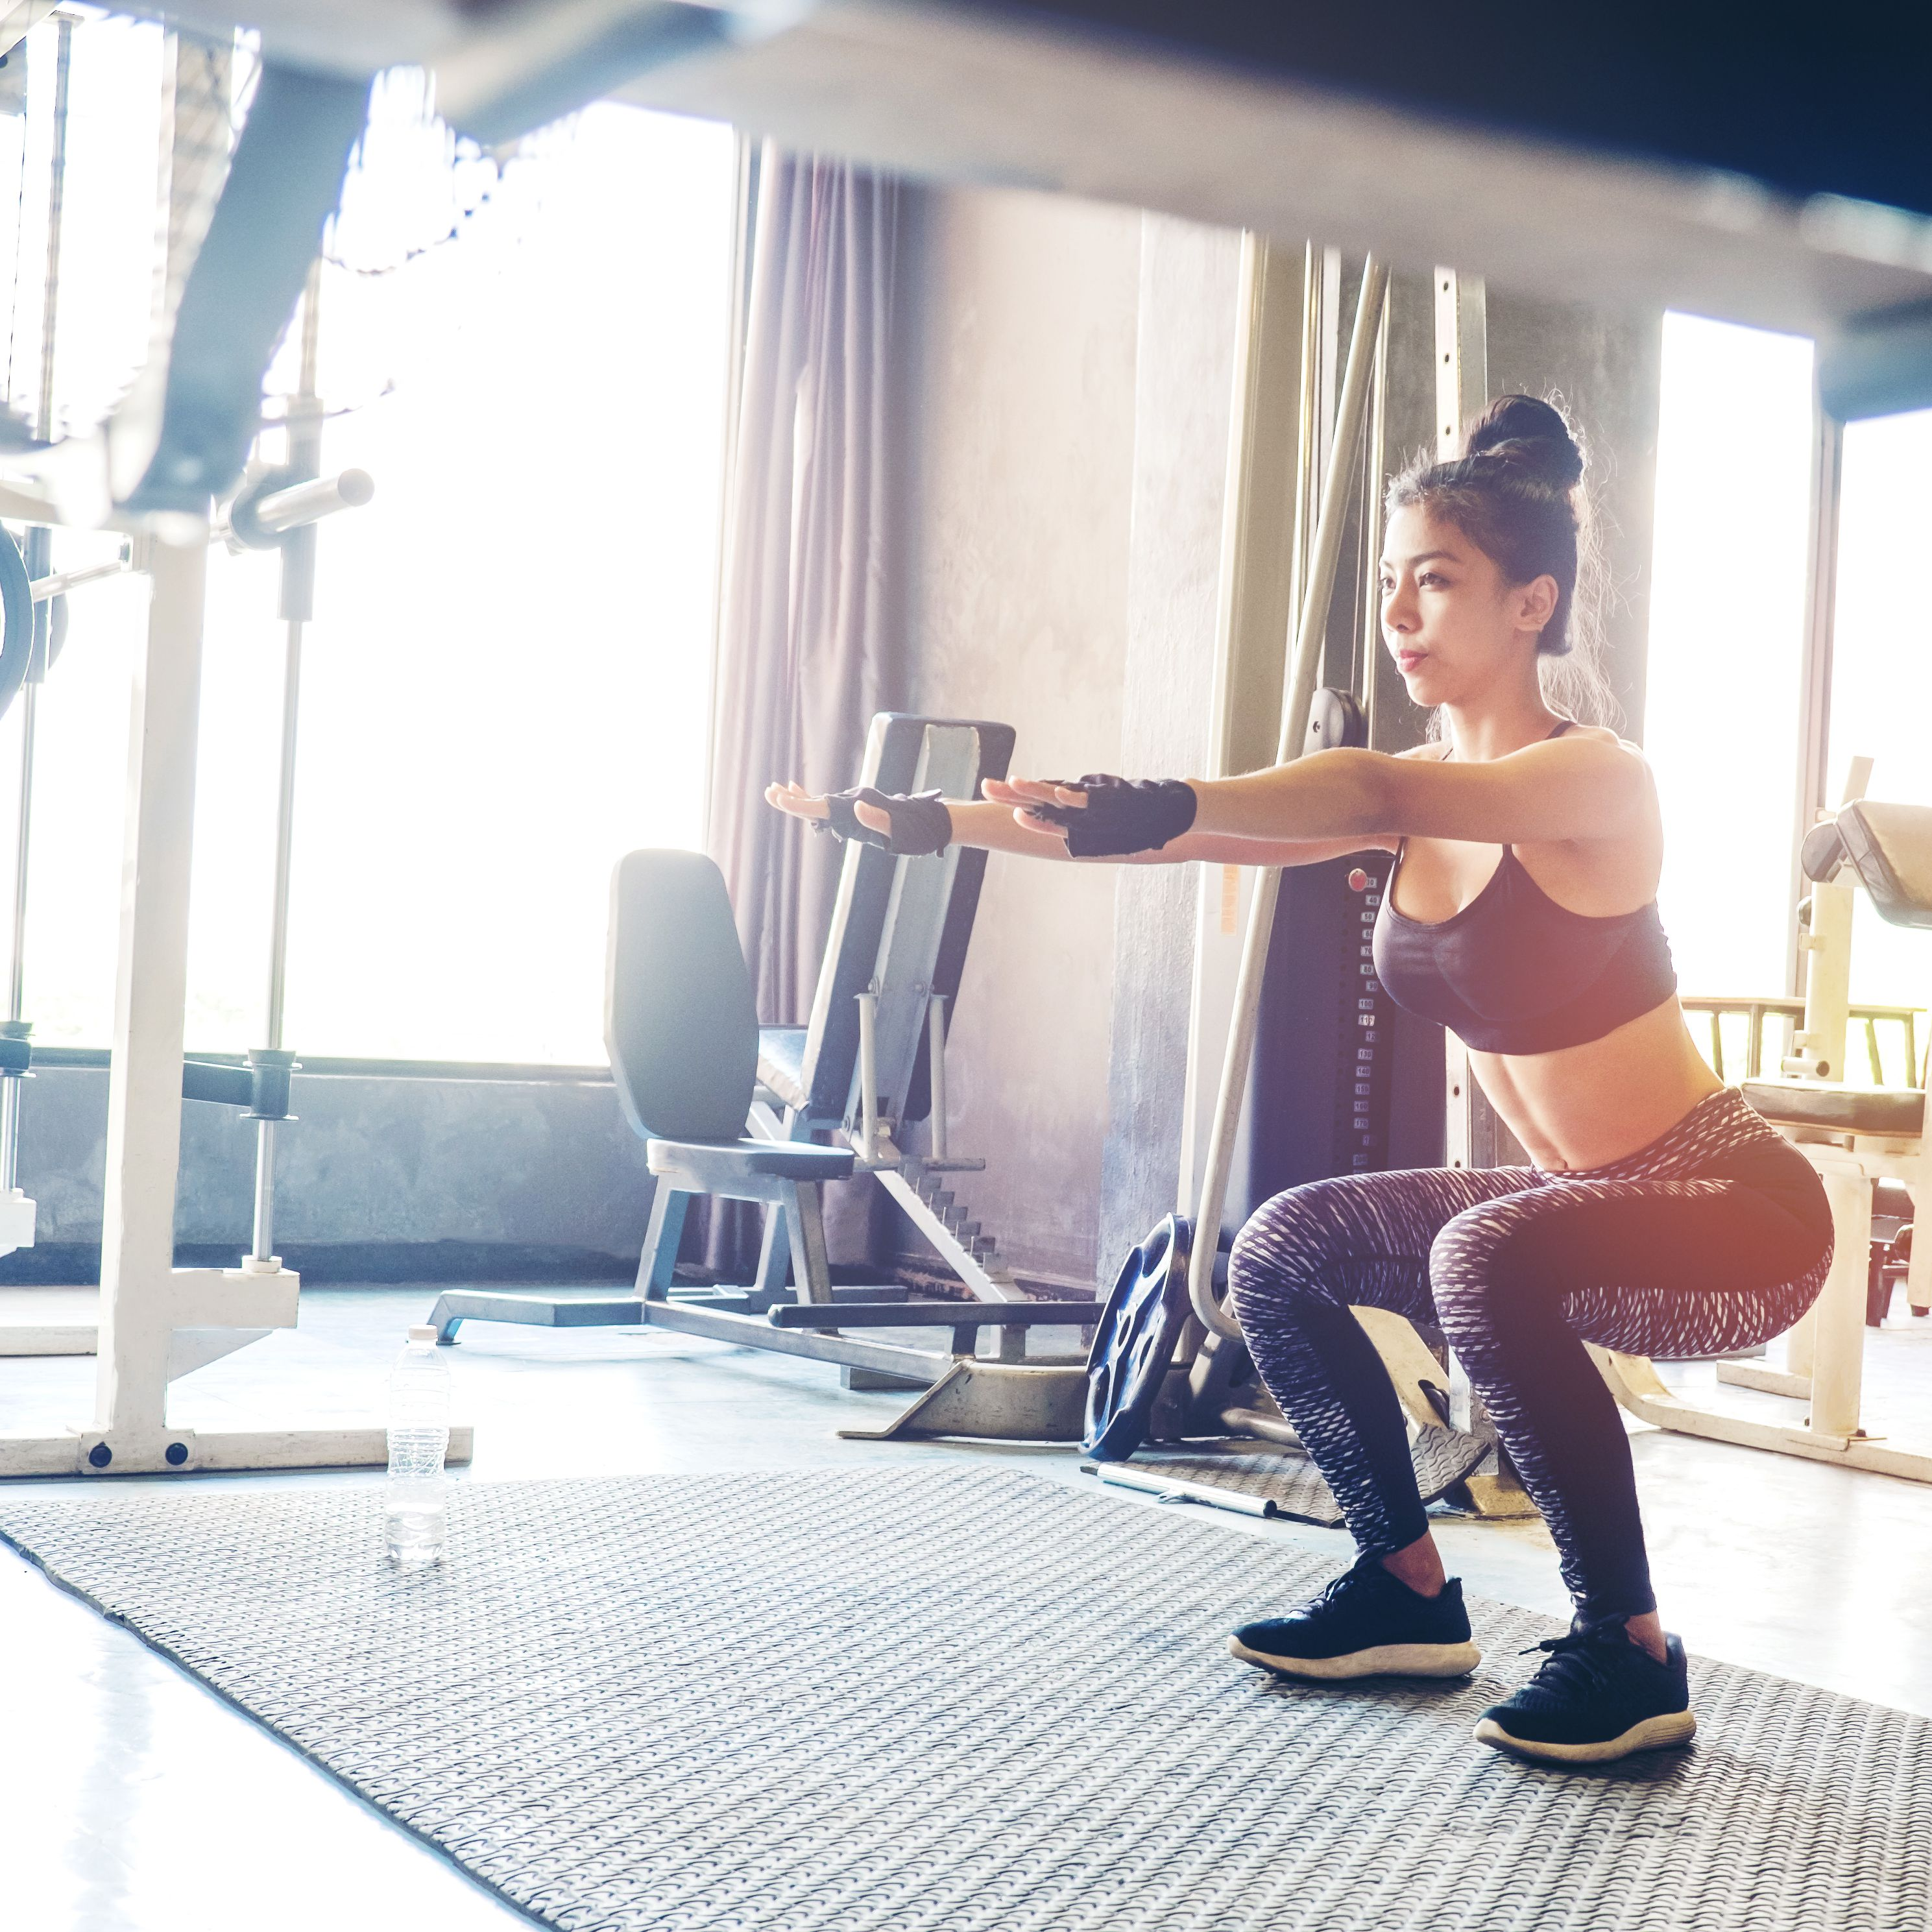 The 7 Best Workout DVDs of 2019